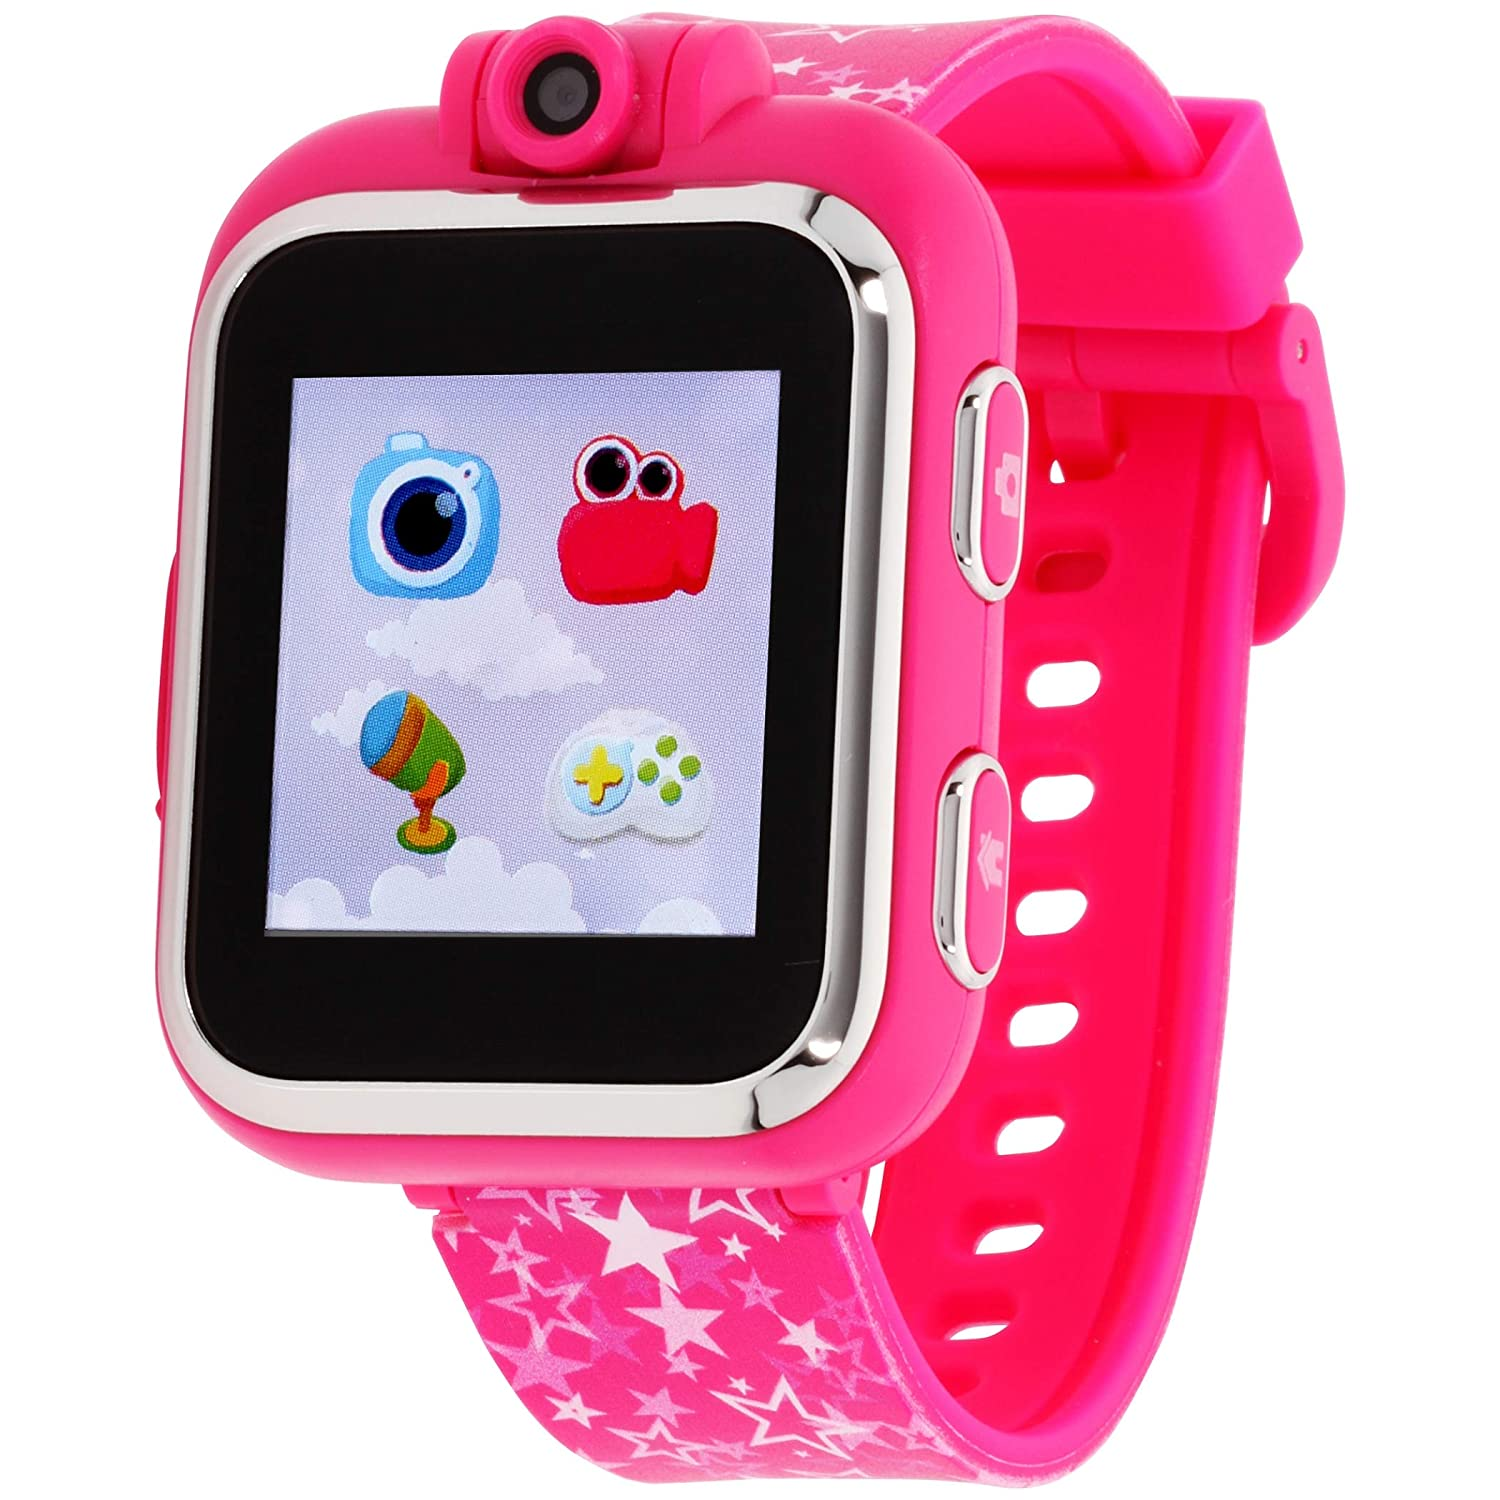 Amazon.com: iTouch Playzoom Kids Smart Watch Fuschia Printed ...